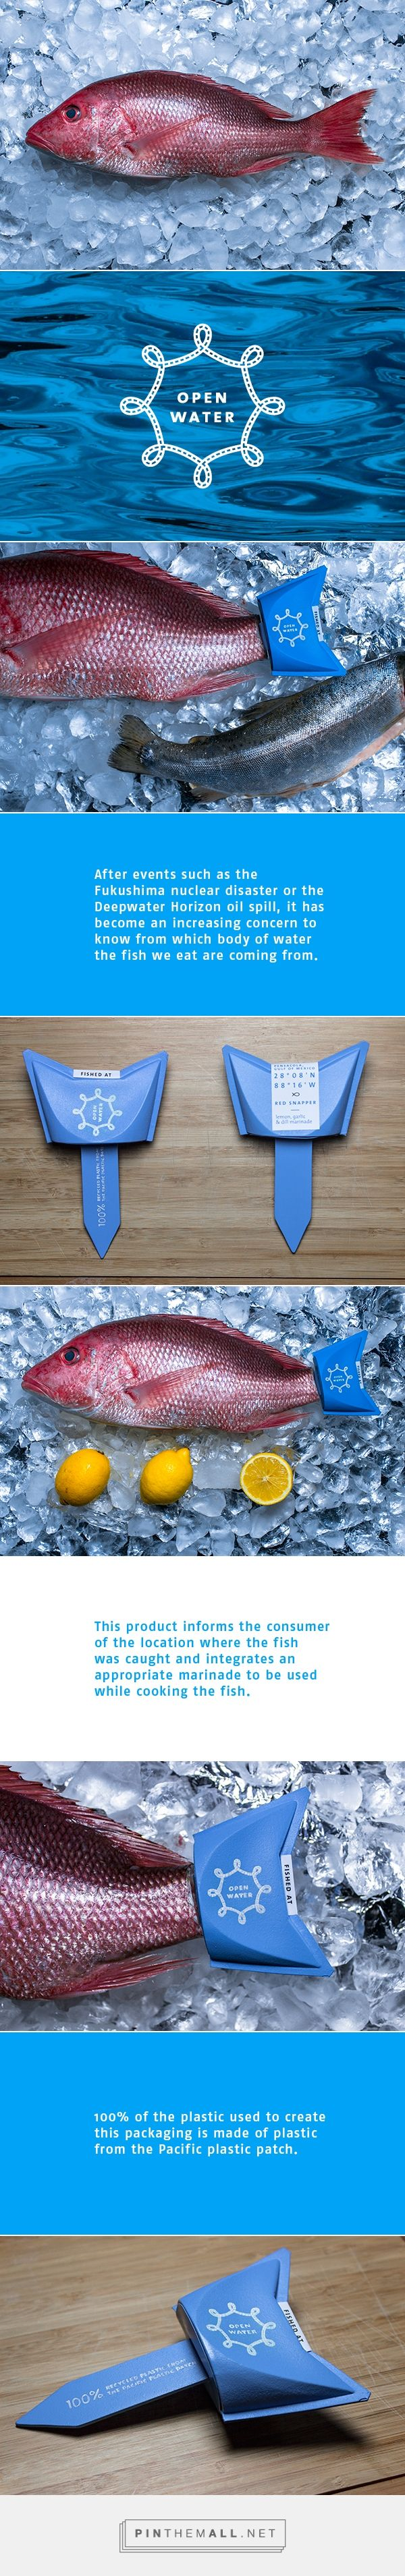 Open Water on Behance by Jeremy Pilote Byrne curated by Packaging Diva. Cool idea for repurposed plastic packaging.